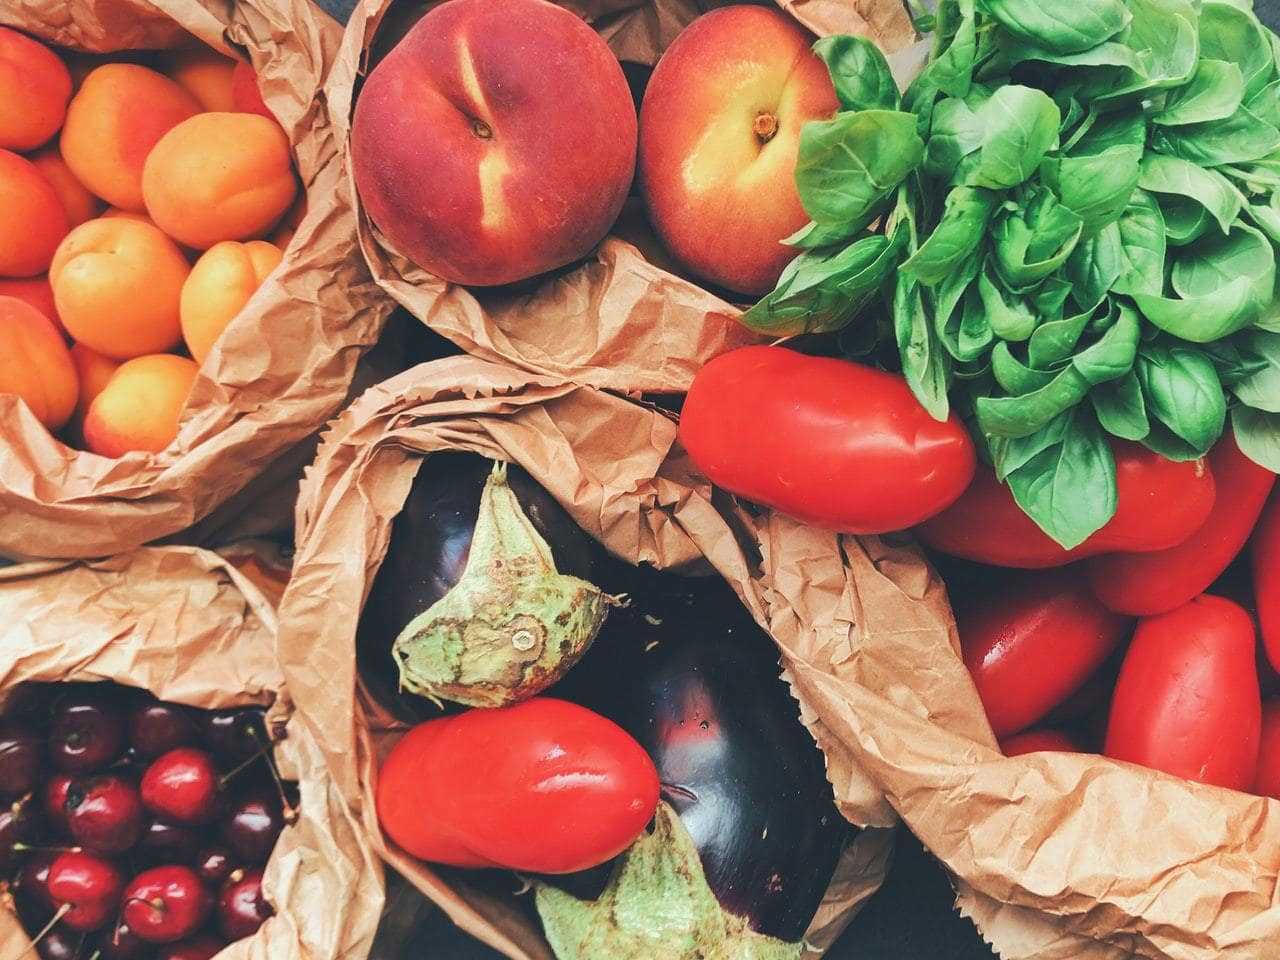 fresher produce means healthier life